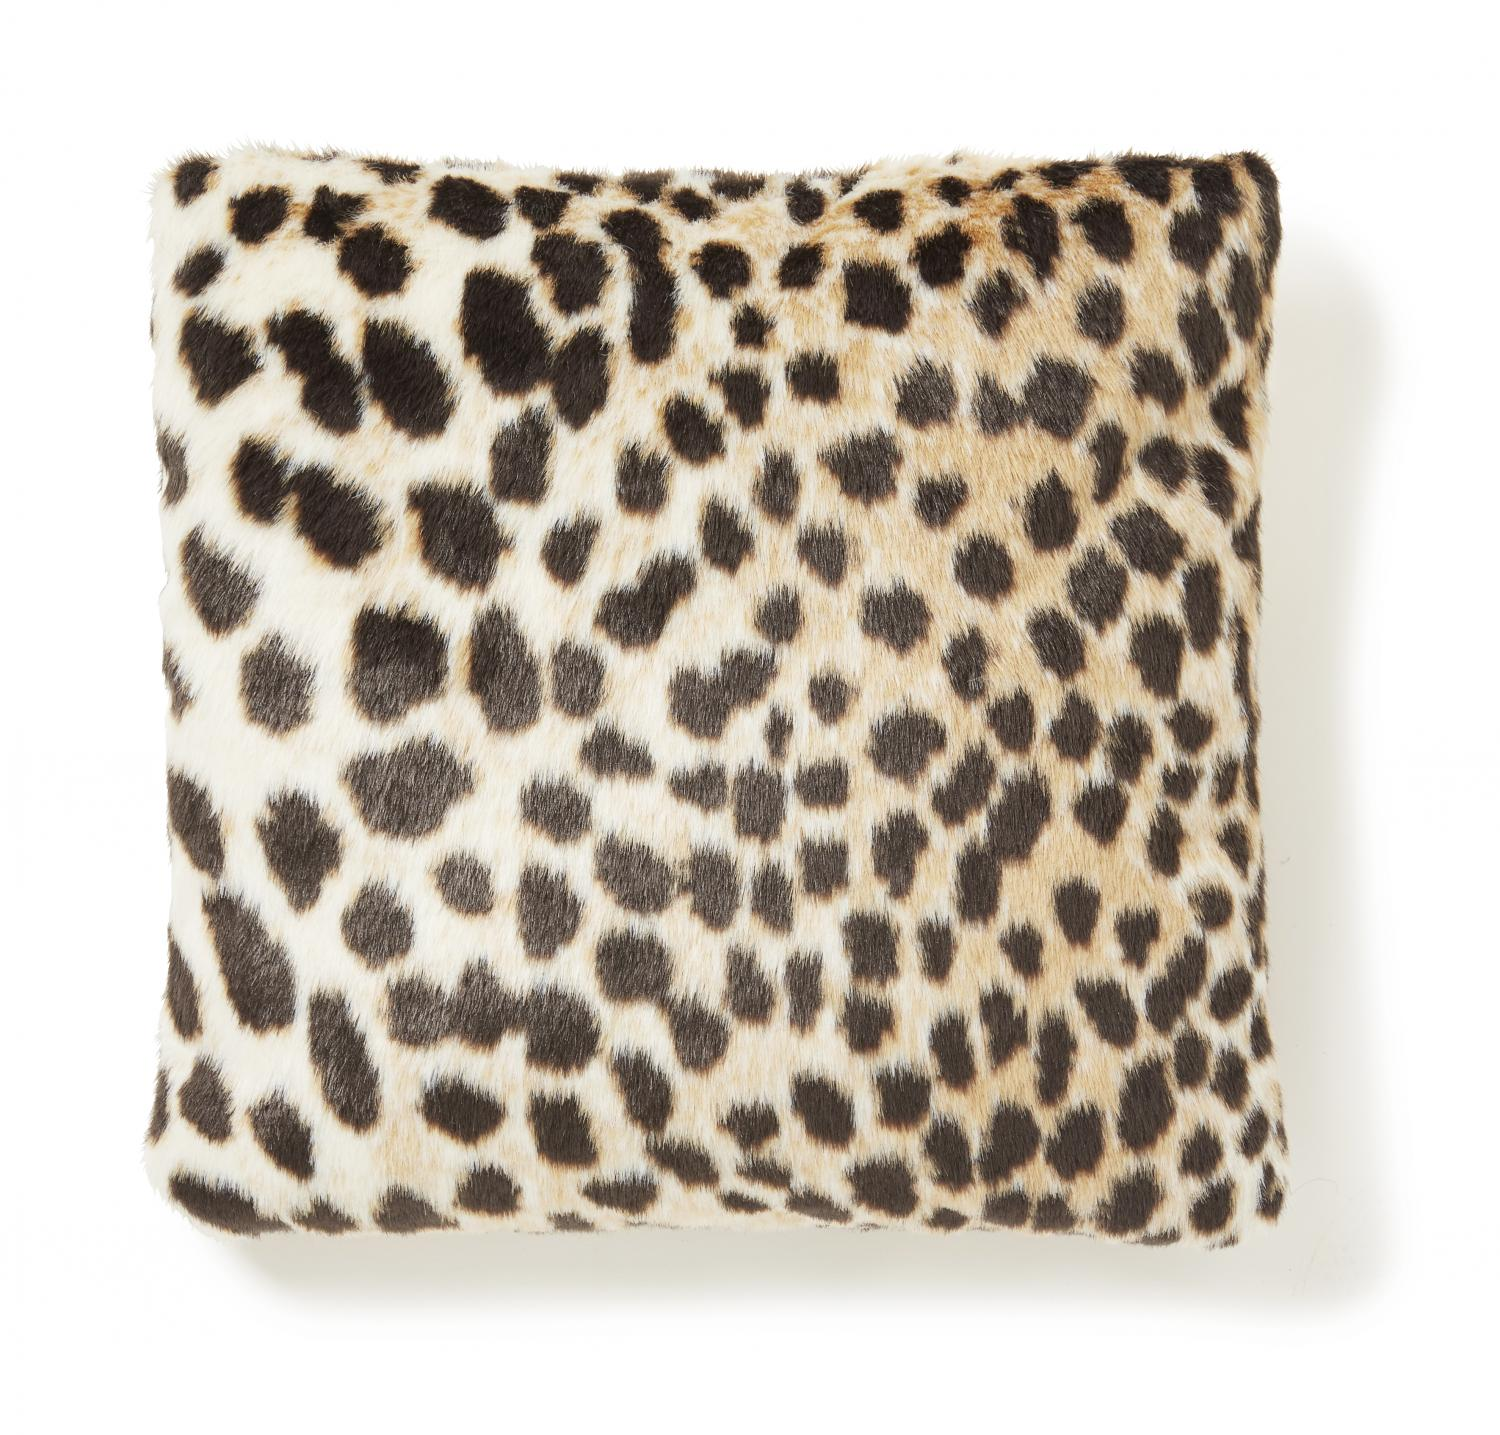 Leo cushion cover - Leopard